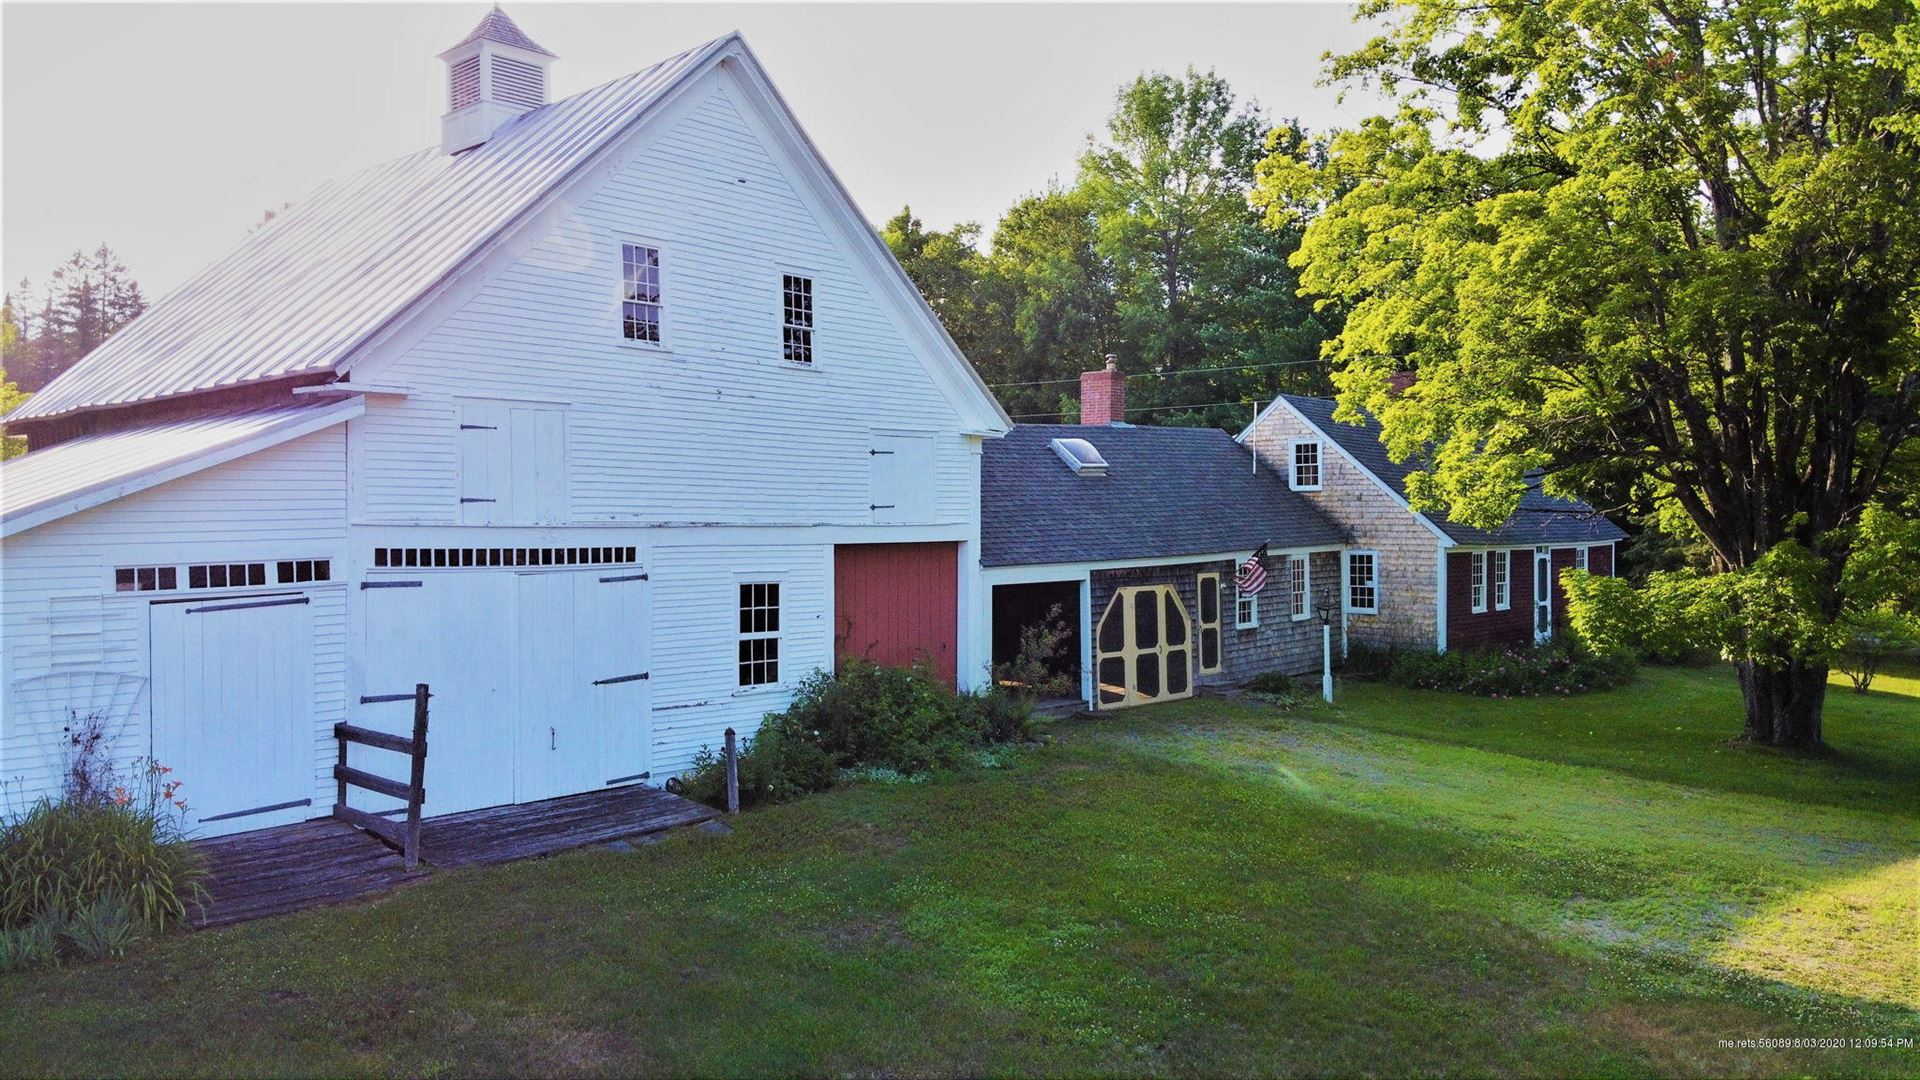 Photo of 502 West Kingfield Road, Kingfield, ME 04947 (MLS # 1460009)